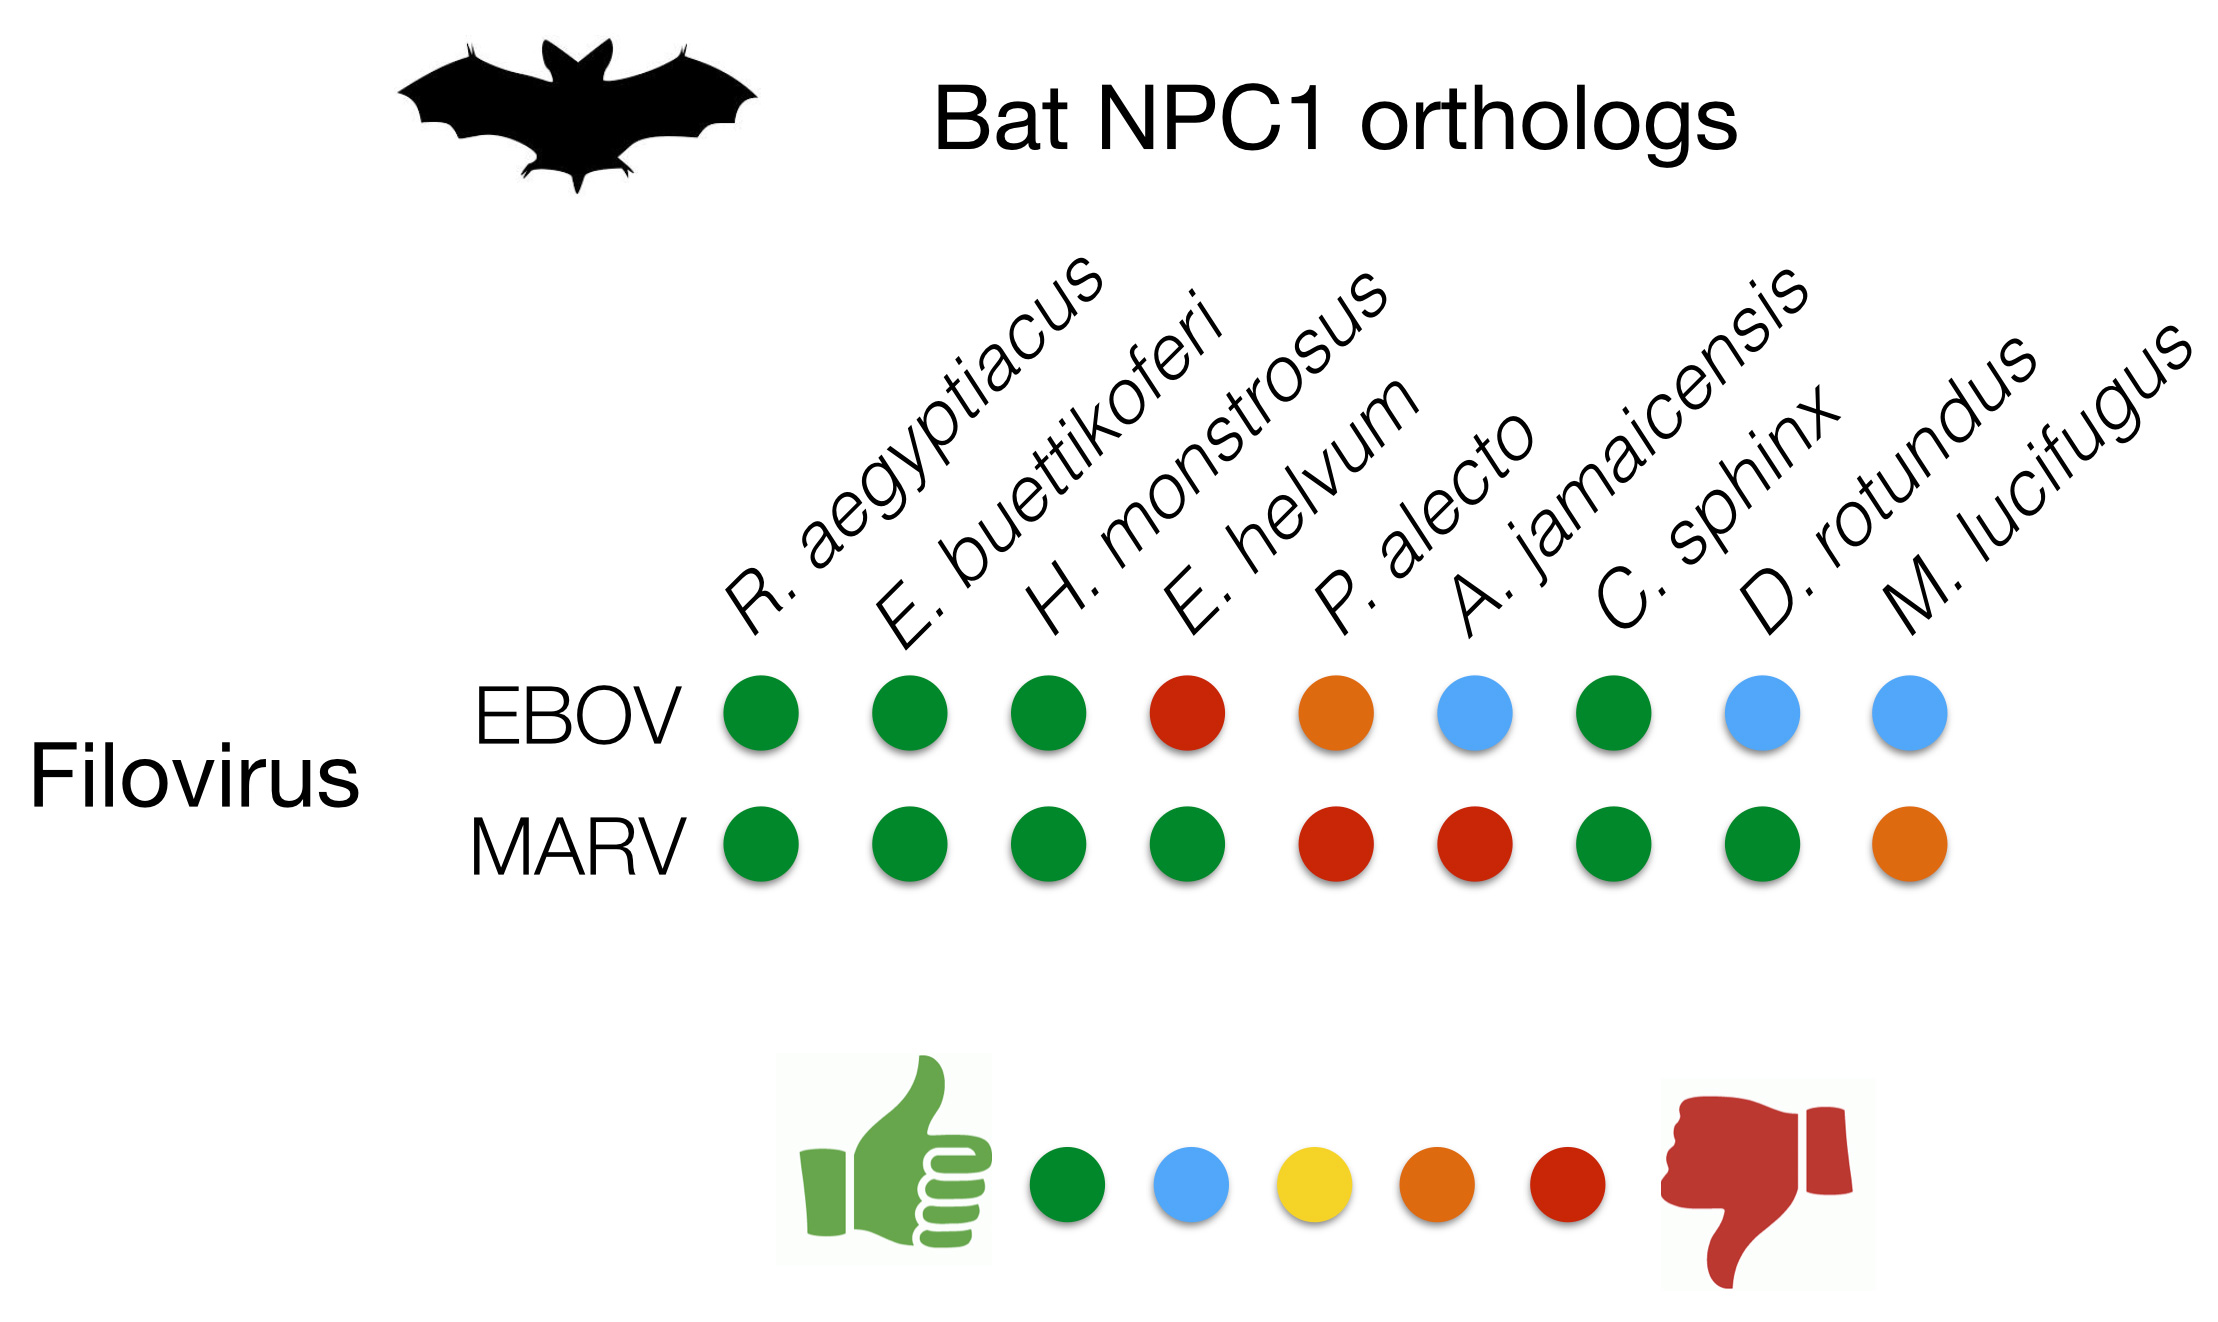 PATTERN OF EBOV (EBOLA VIRUS) AND MARV (MARBURG VIRUS) GP BINDING TO NPC1 PROTEINS DERIVED FROM DIFFERENT SPECIES OF BATS. GREEN IS GREAT BINDING, RED IS NO DETECTABLE BINDING. © KARTIK CHANDRAN